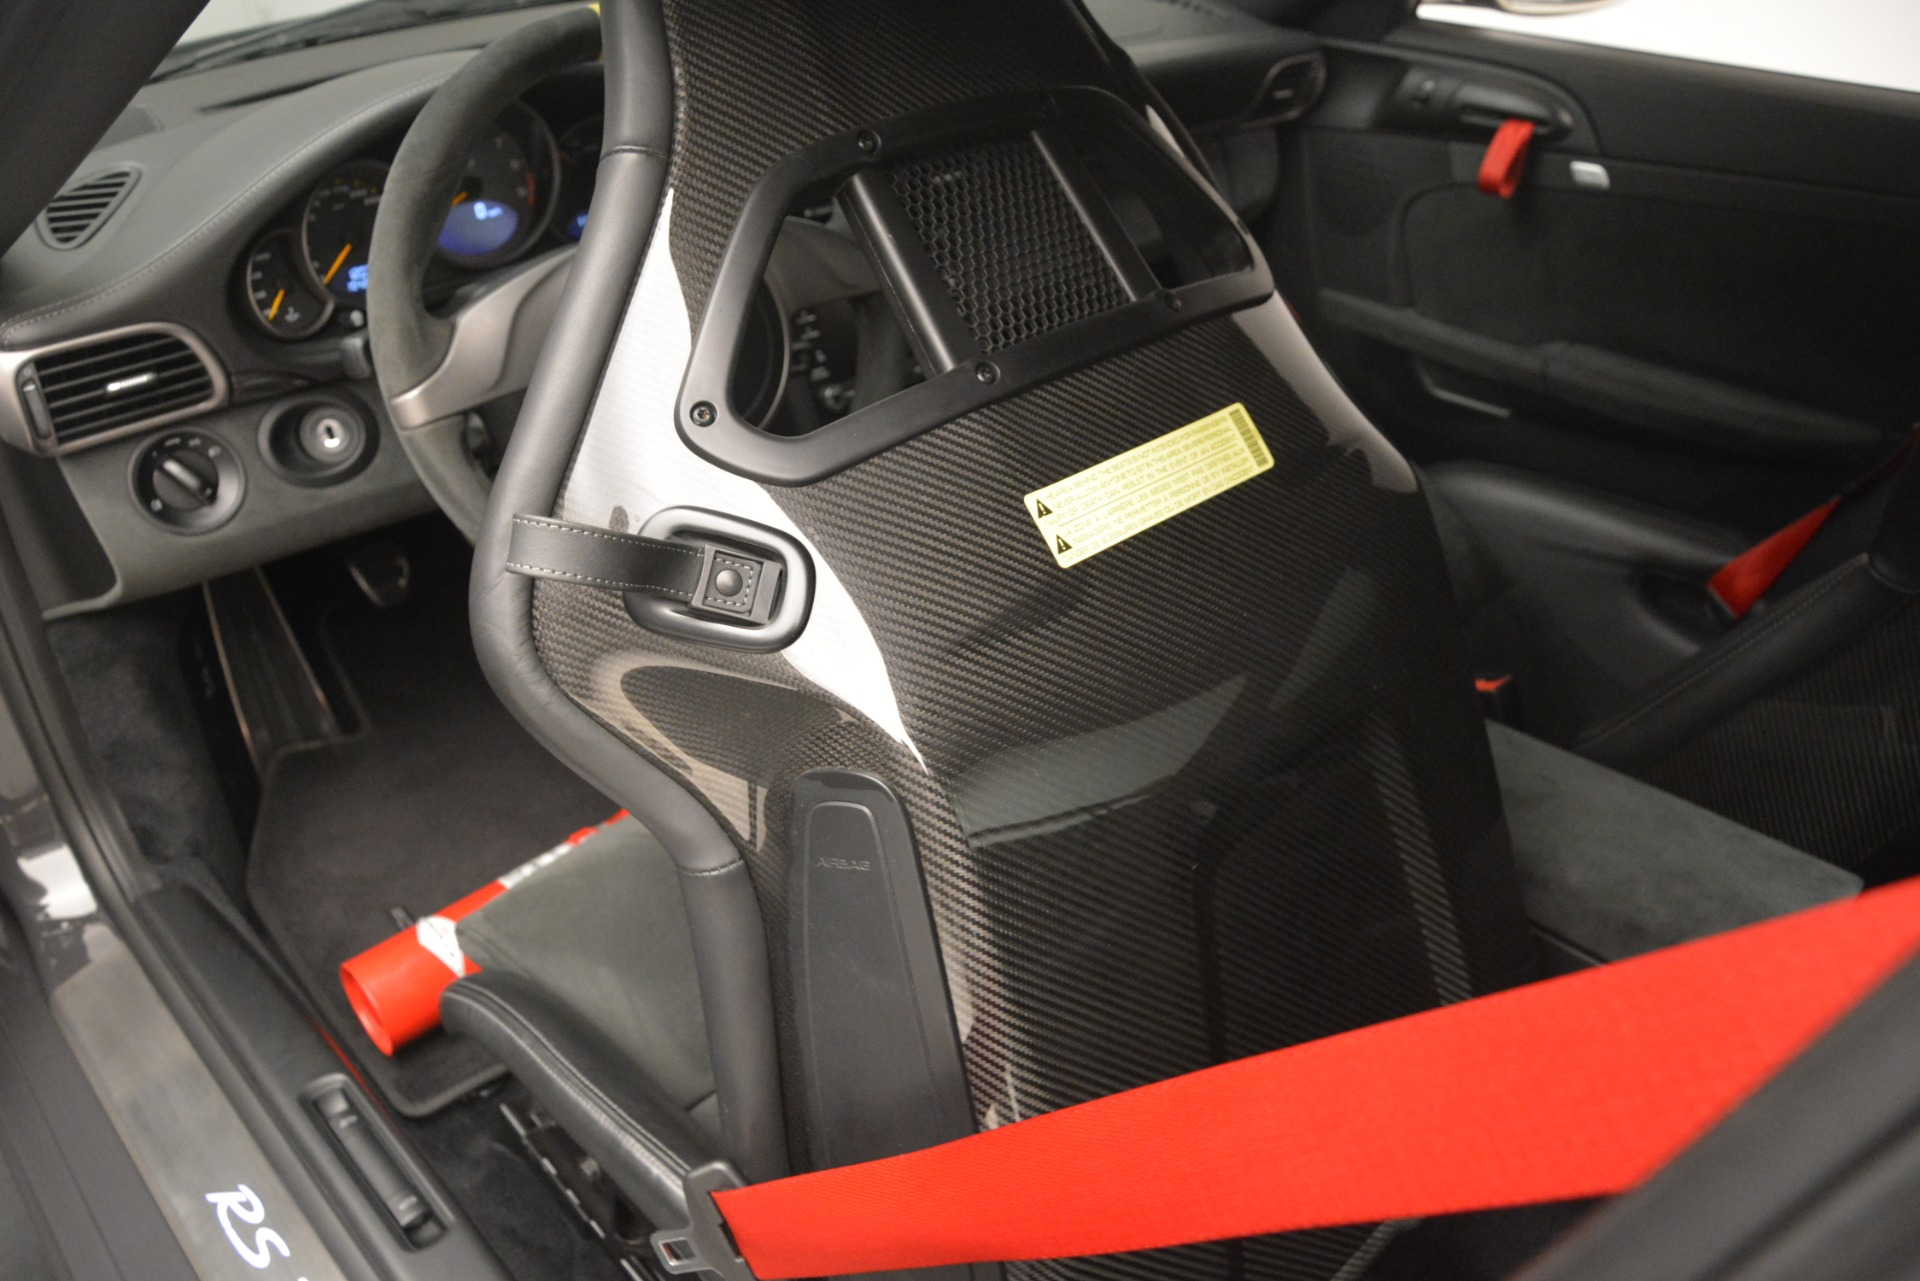 Used 2011 Porsche 911 GT3 RS For Sale In Westport, CT 3012_p21